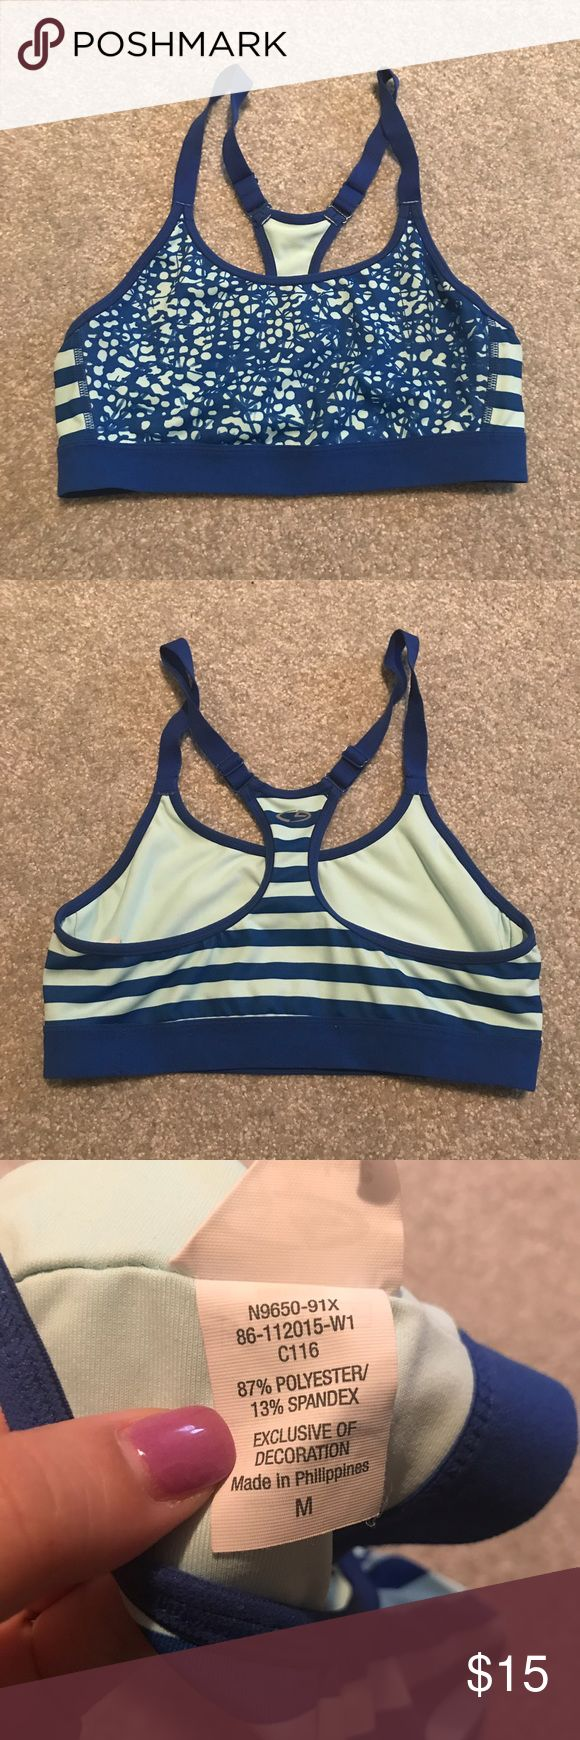 Champion Blue striped sports bra Medium support blue striped sports bra! Only worn a few times around the house, before I realized I needed more support for a larger chest. It's totally adorable and perfect for working out. Champion Intimates & Sleepwear Bras